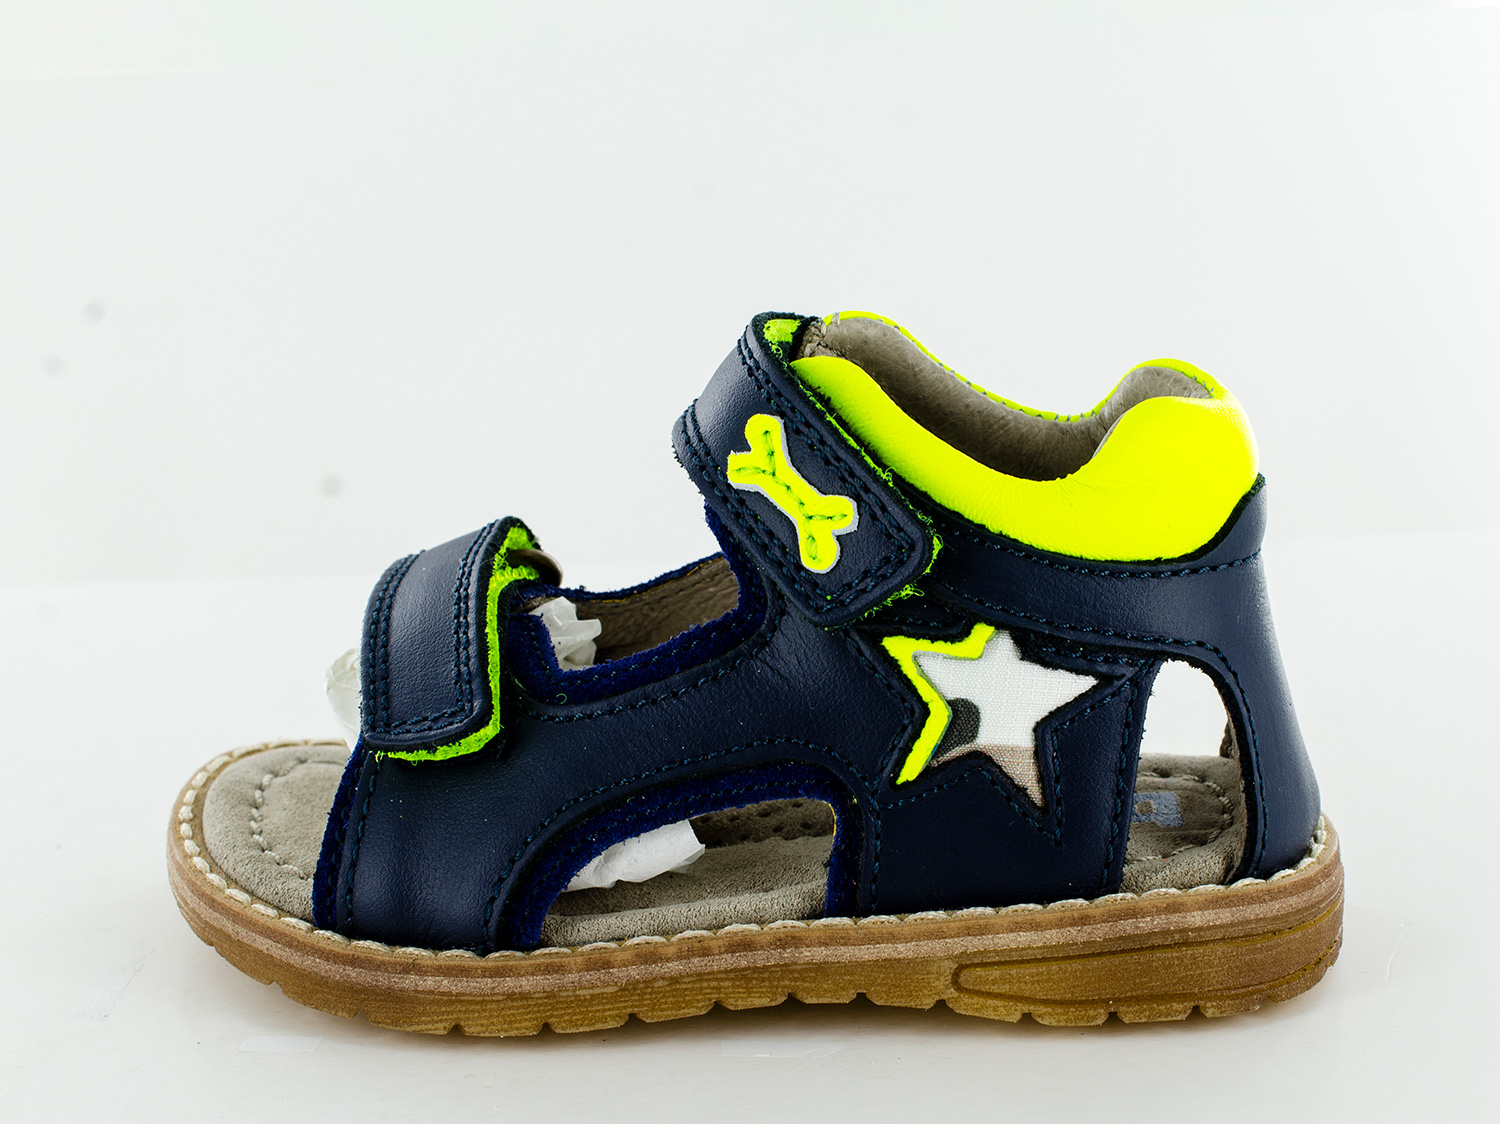 DONG calf navy + yellow fluo